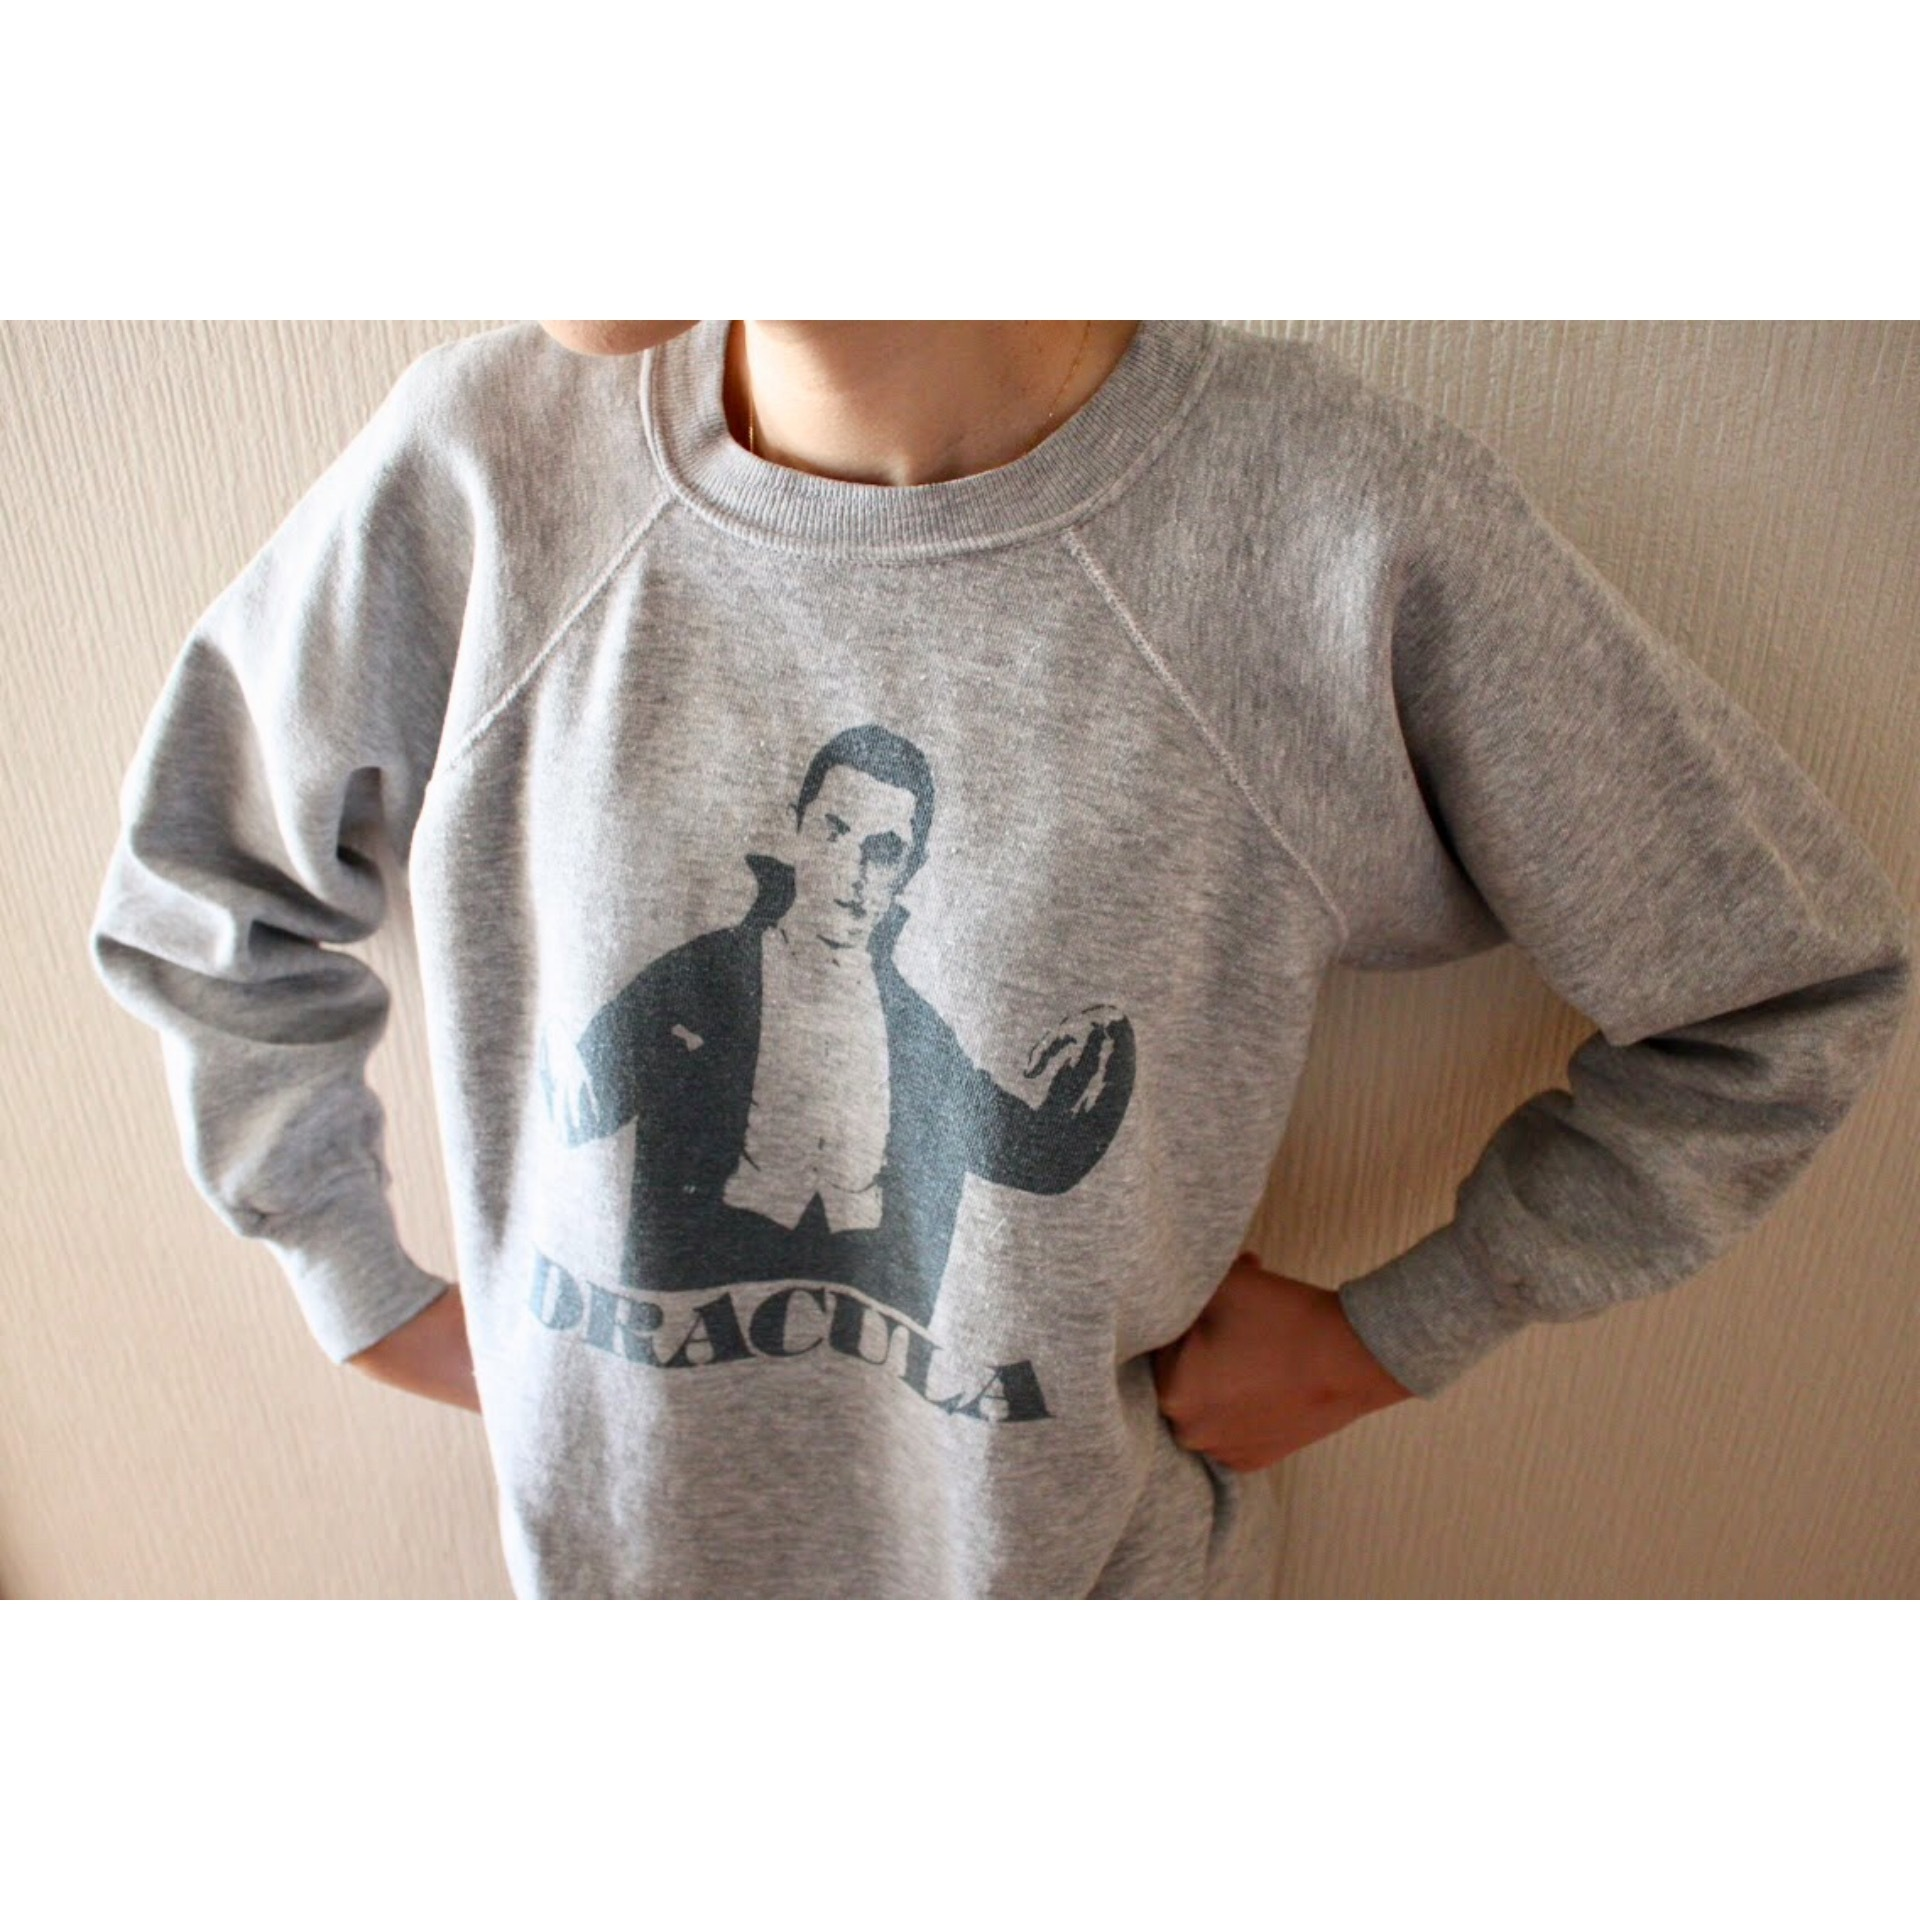 """Vintage """"DRACULA"""" sweater by Champion"""